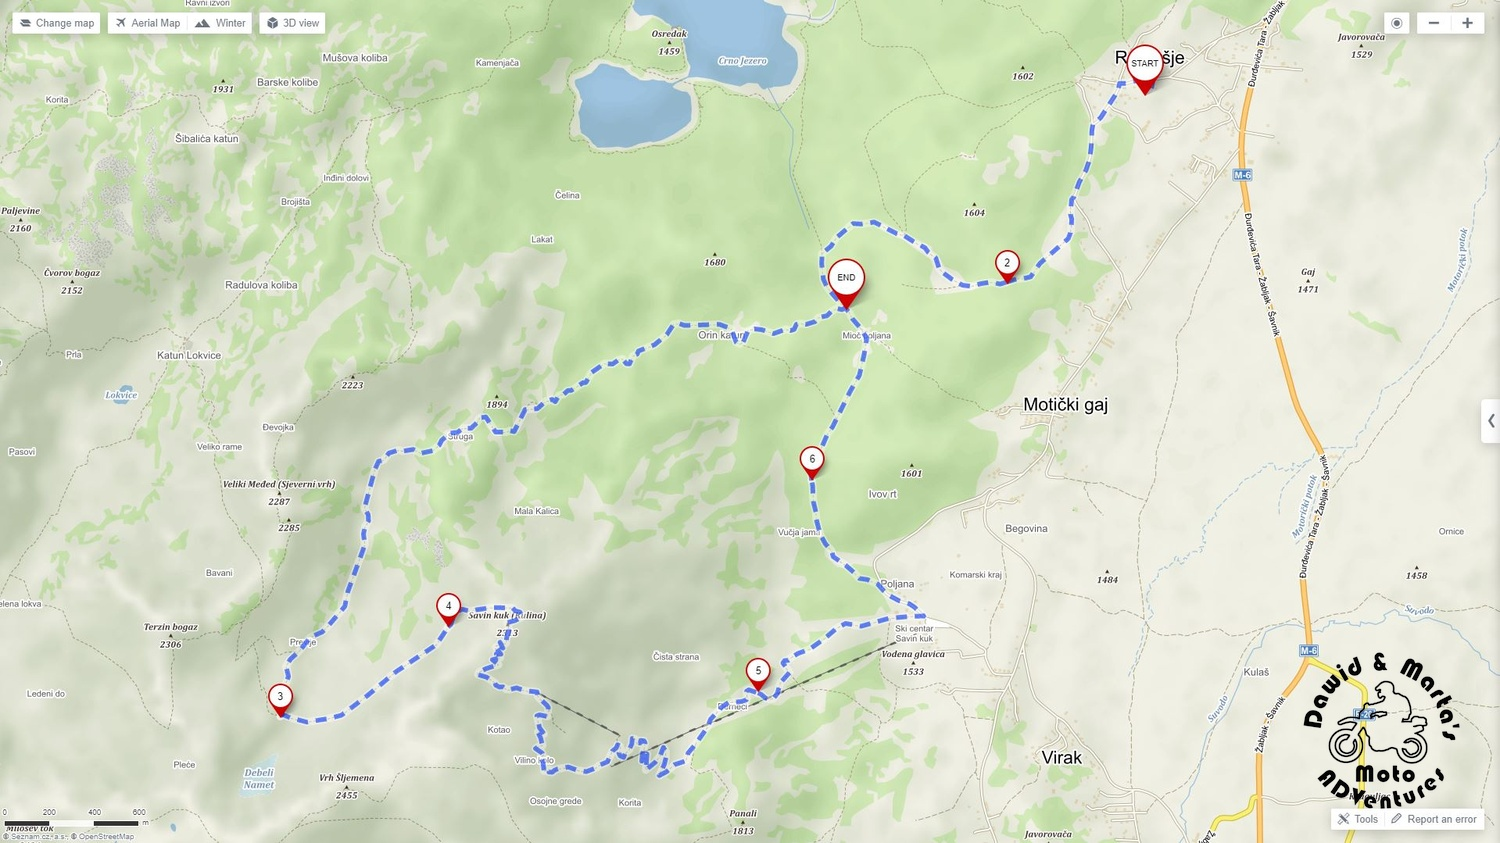 Our planned route to Savin Kuk top for hiking in Durmitor National Park